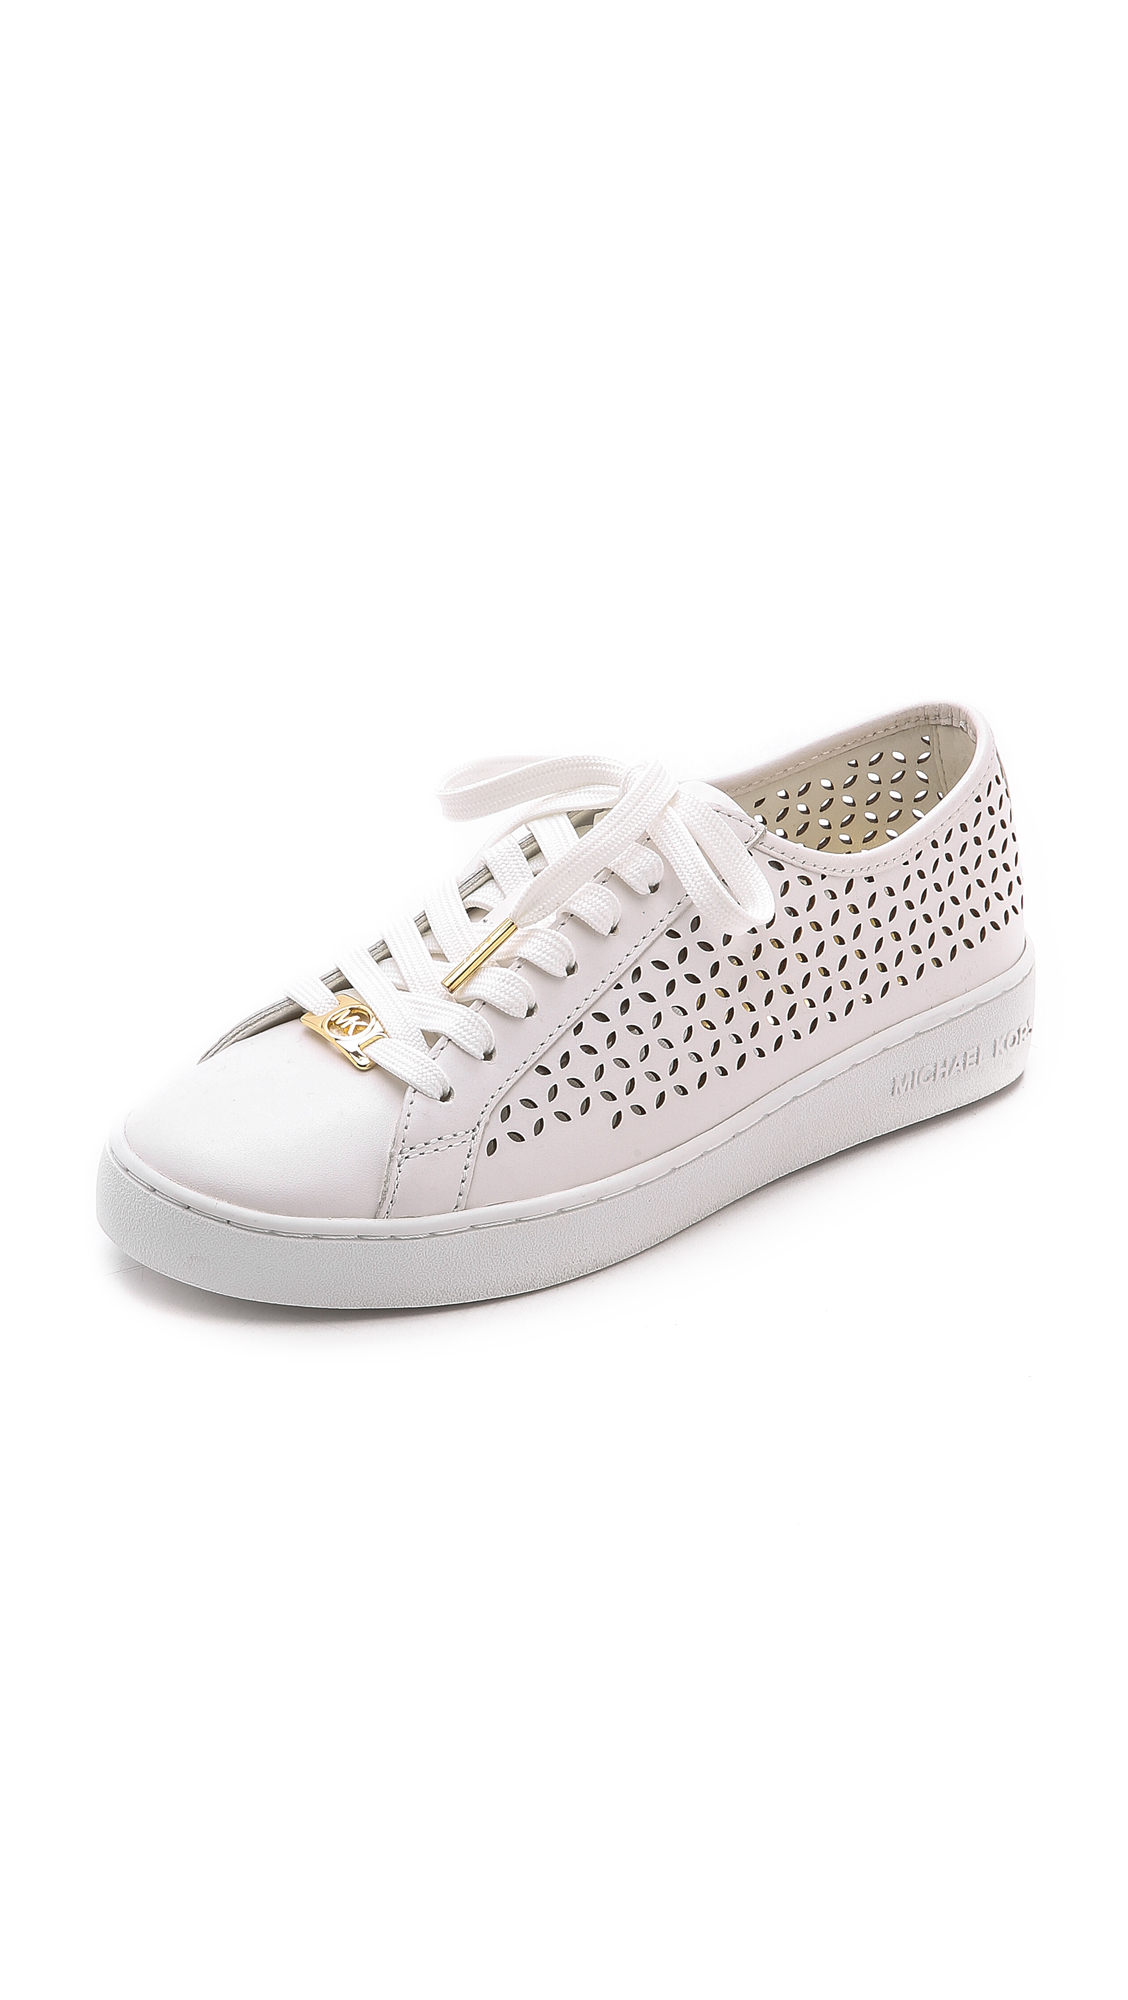 9d9c759c4ab MICHAEL Michael Kors Olivia Lace Up Sneakers - Optic White in White ...